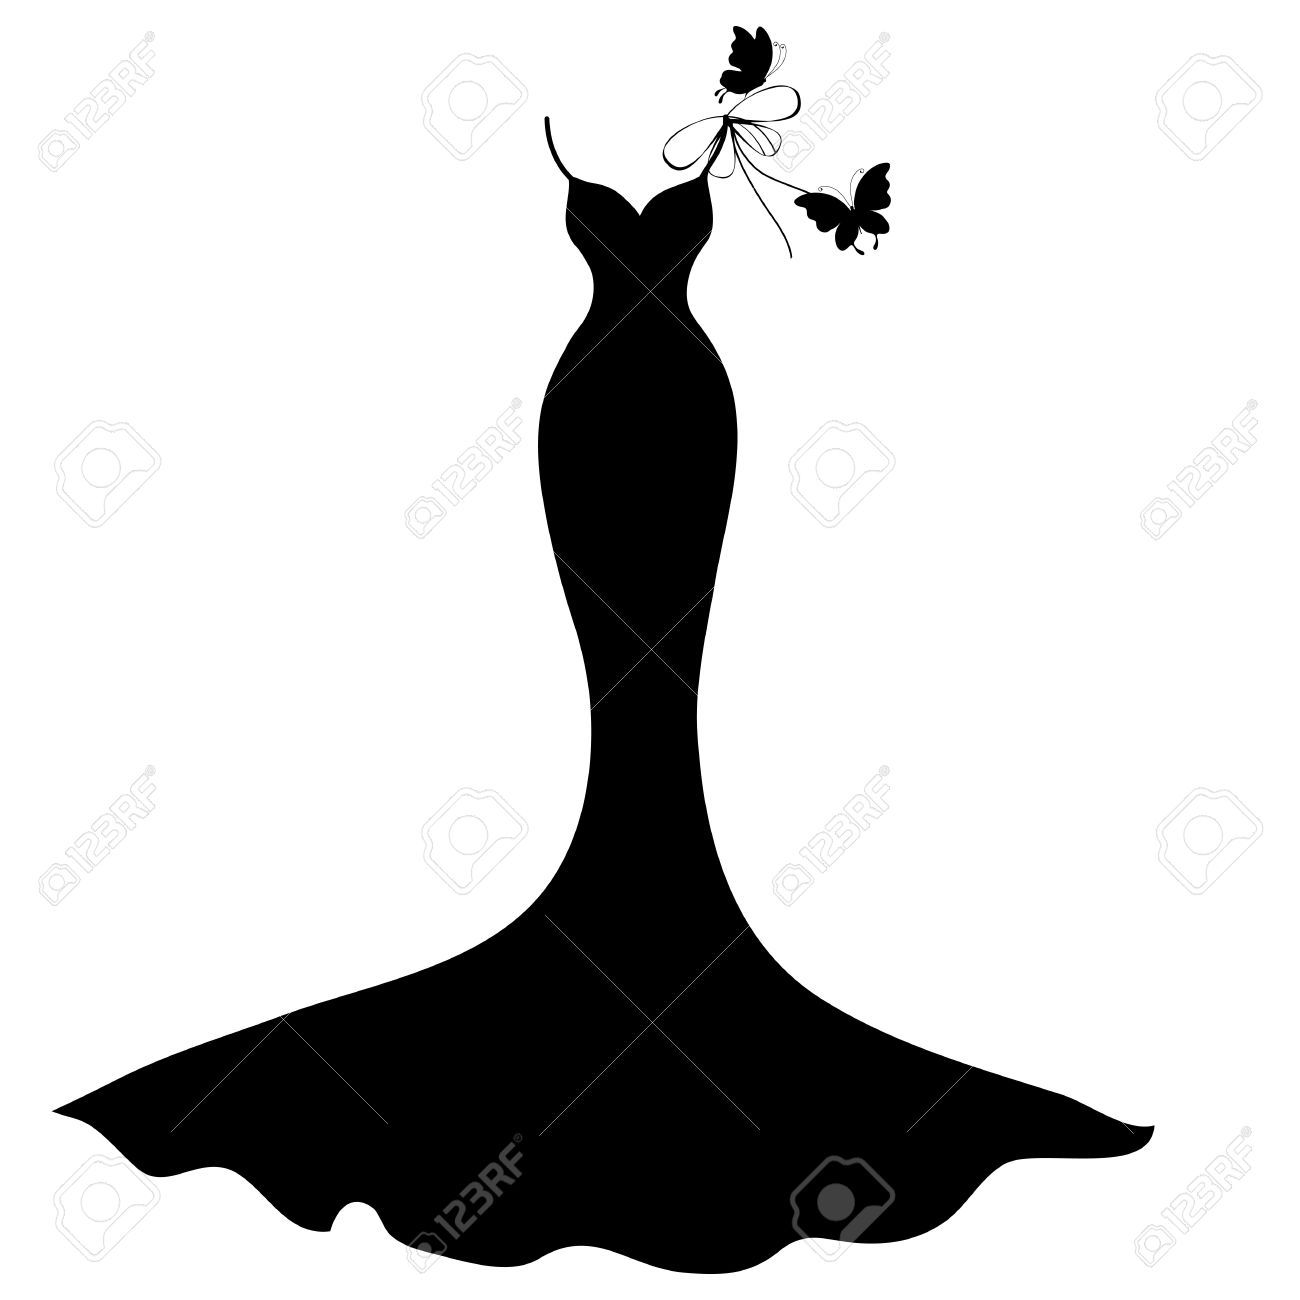 Wedding Dress Silhouette Clip Art at GetDrawings.com | Free for ...